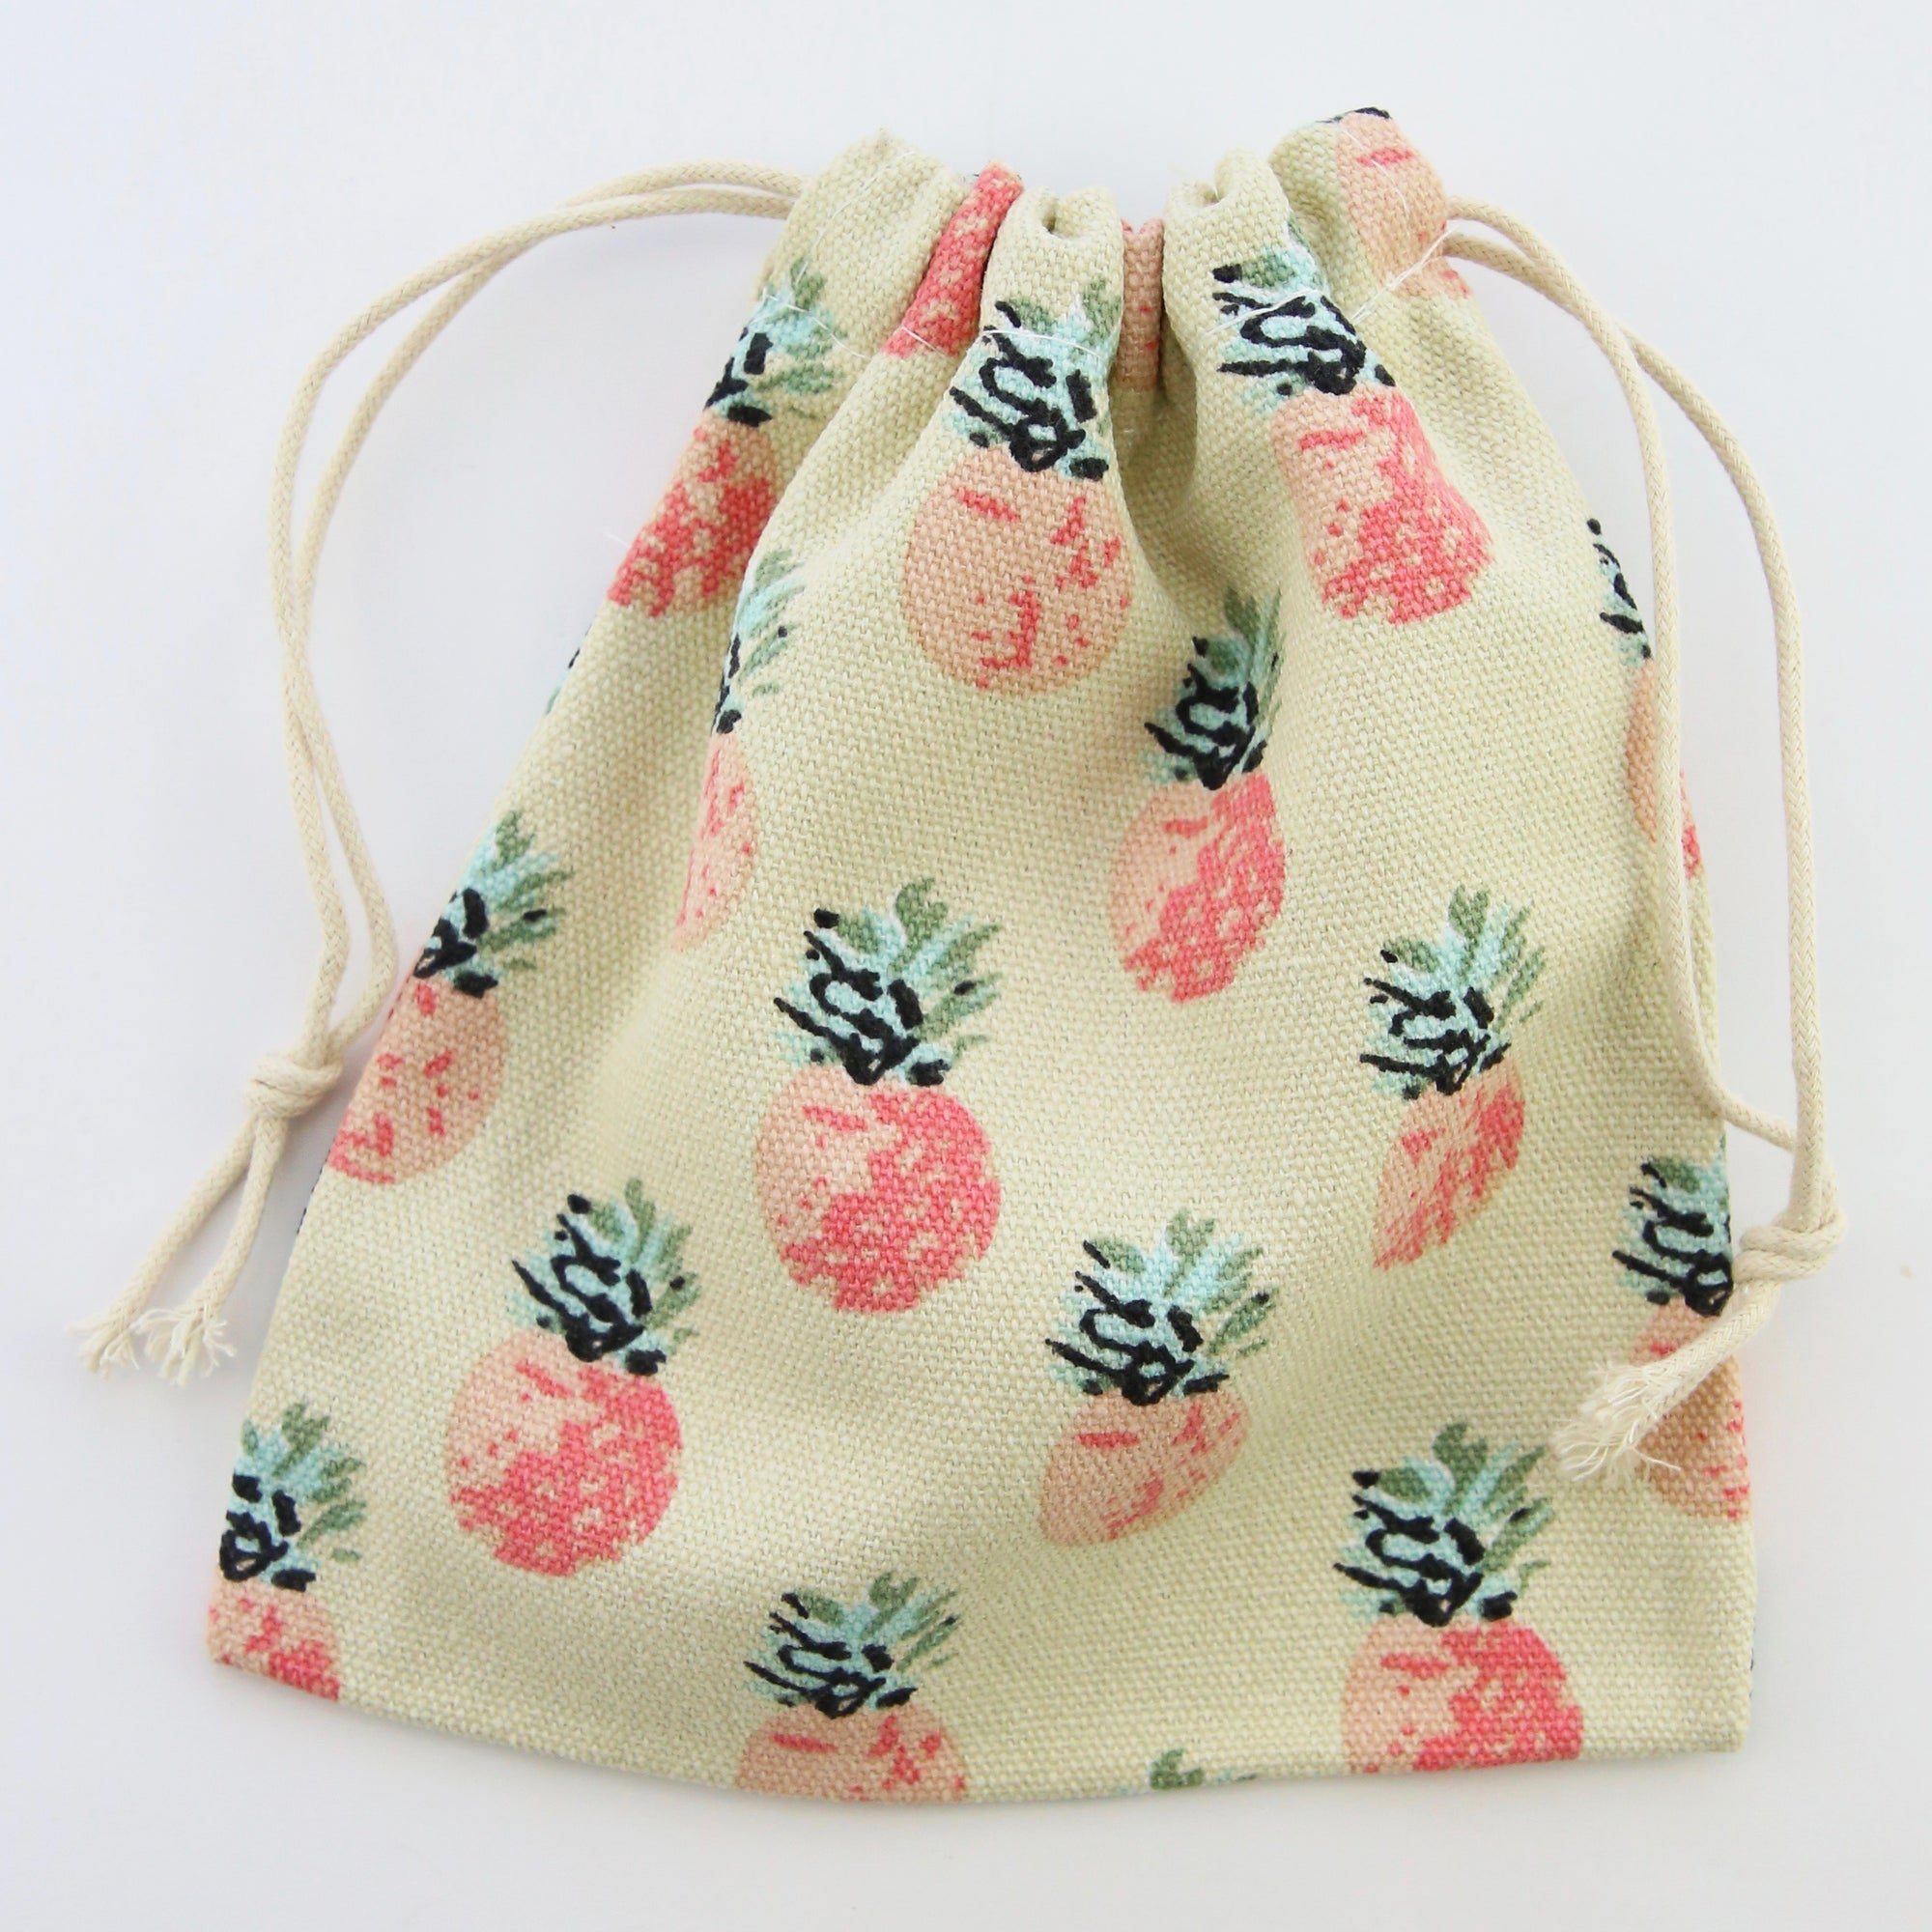 Sister & Soul Pineapple Gift Bag - Create Your Own Bundle